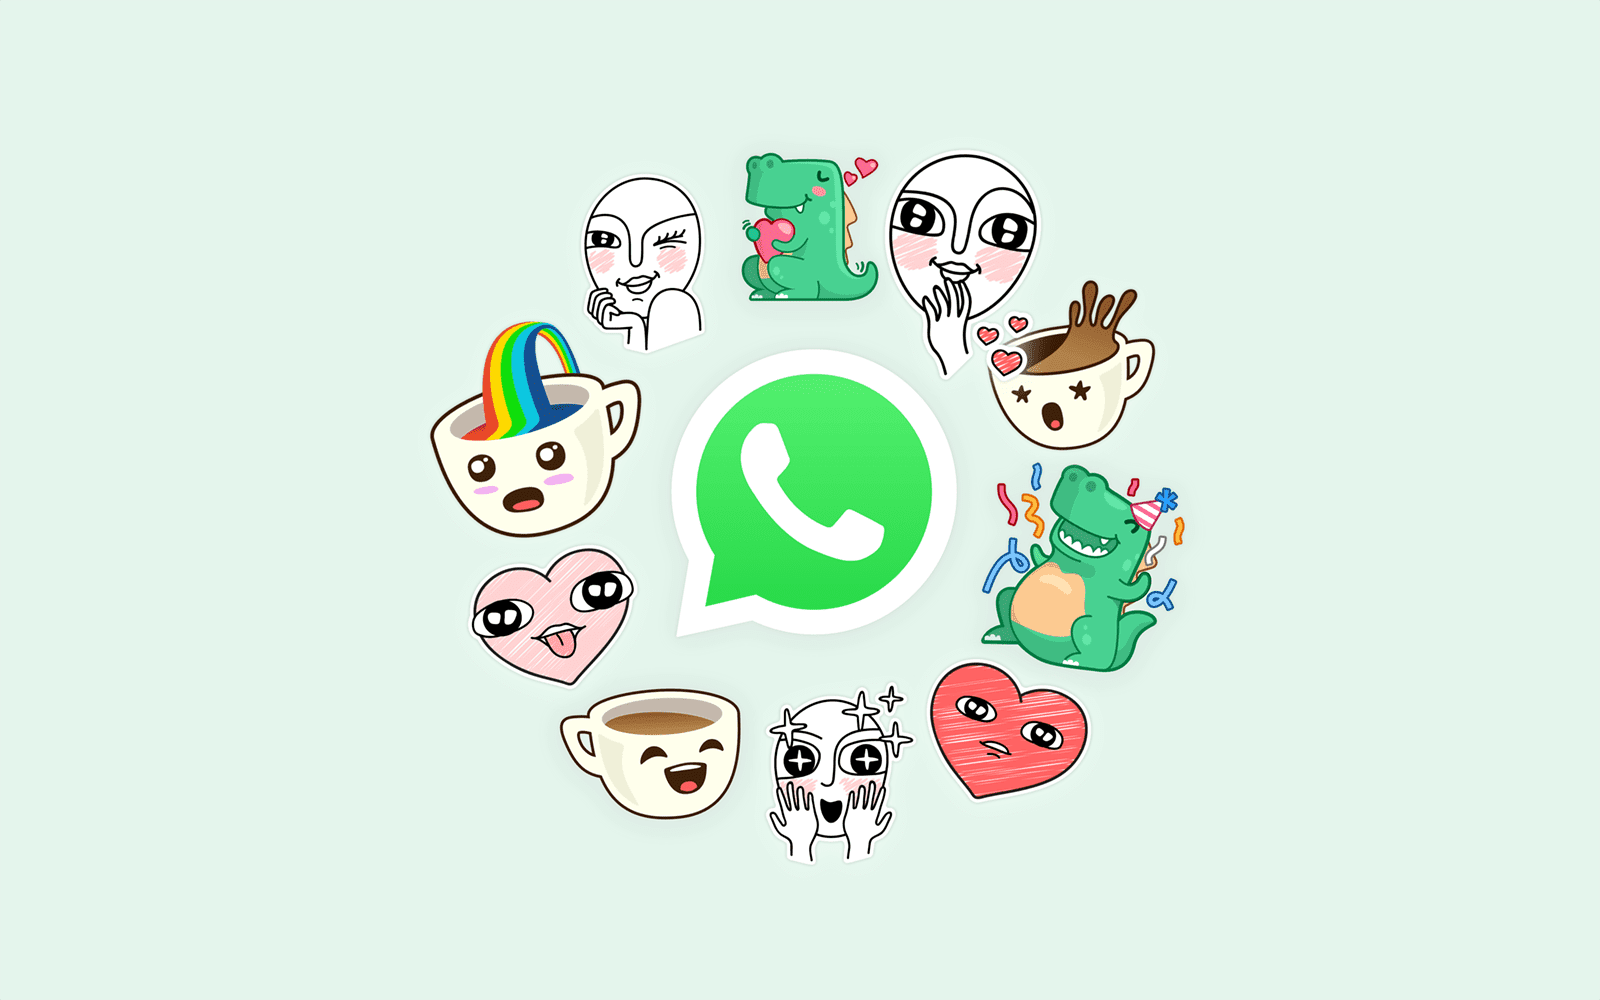 whatsapp logo with stickers